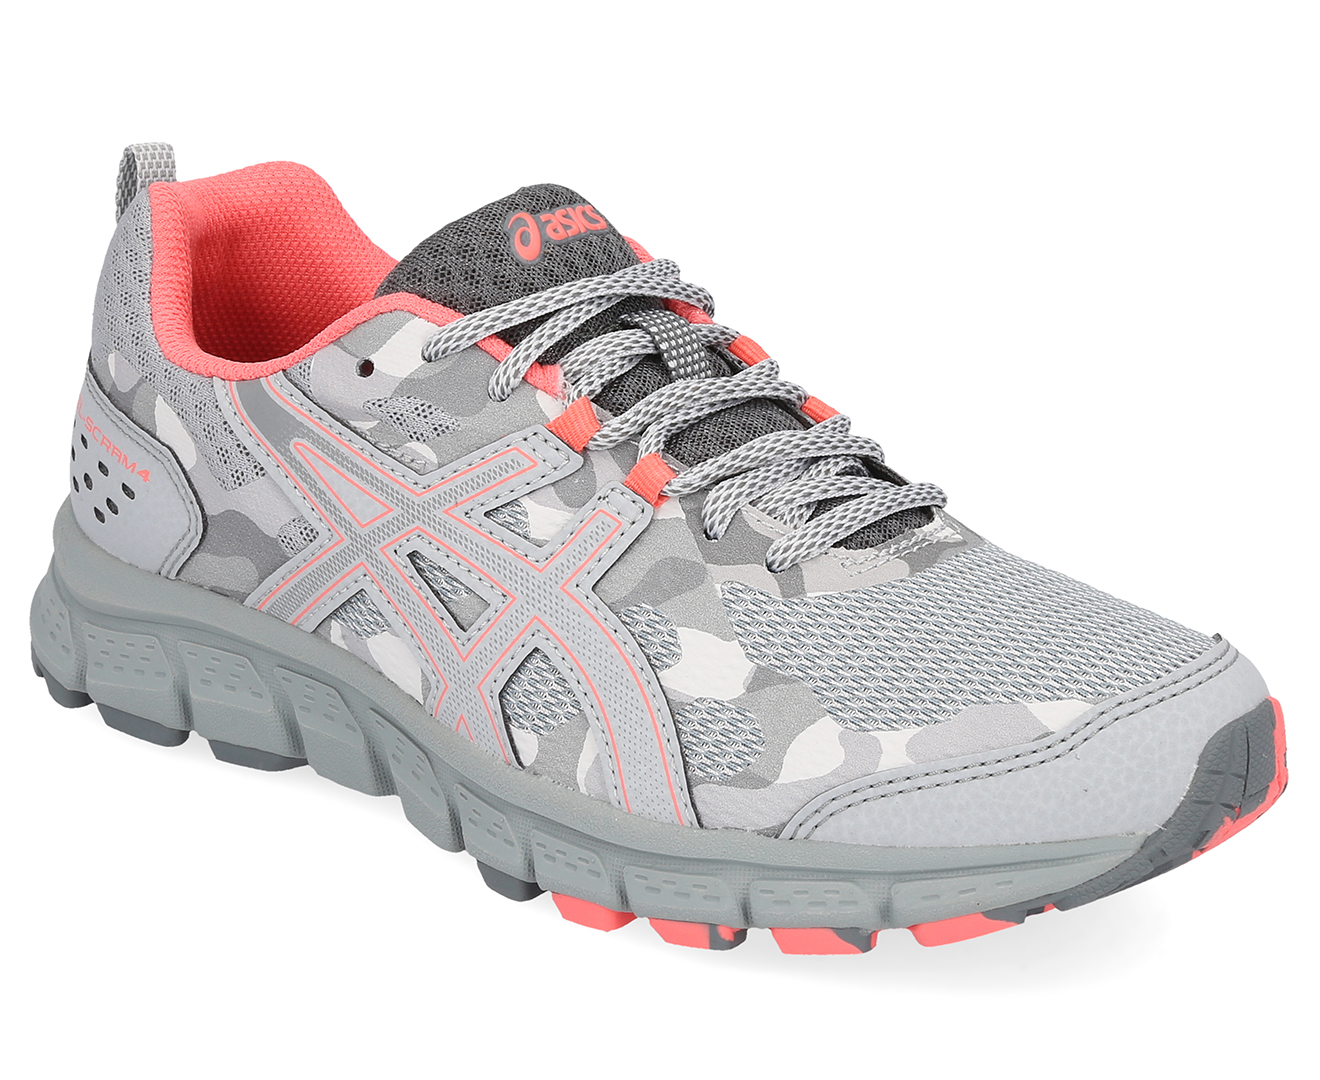 Details about ASICS Women's GEL Scram 4 Trail Running Sports Shoes Mid GreyStone Grey